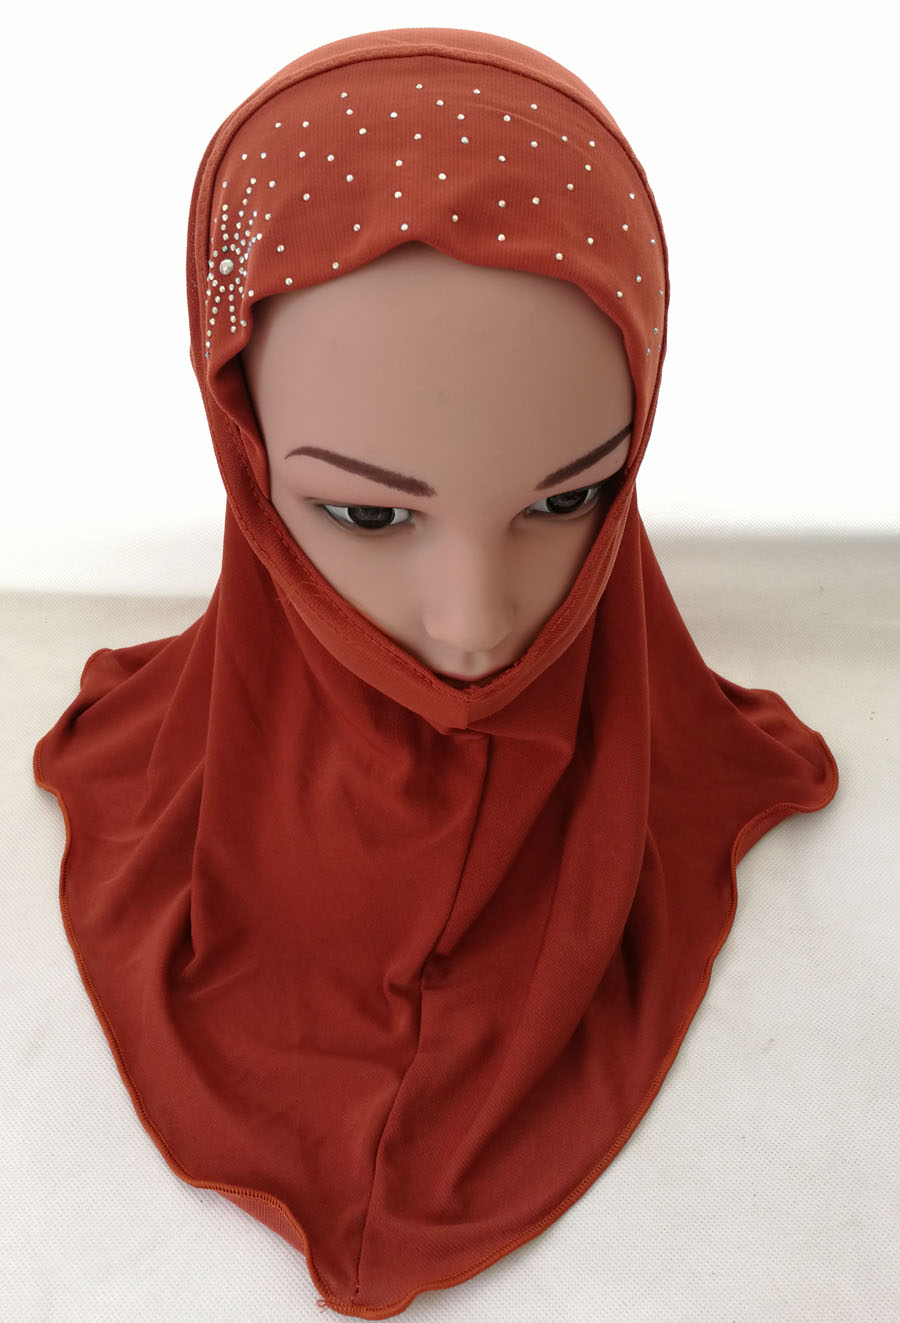 Girls-Kids-Muslim-Hijab-Hats-Islamic-Arab-Scarf-Caps-Shawls-Amira-Headwear-3-8Y thumbnail 80